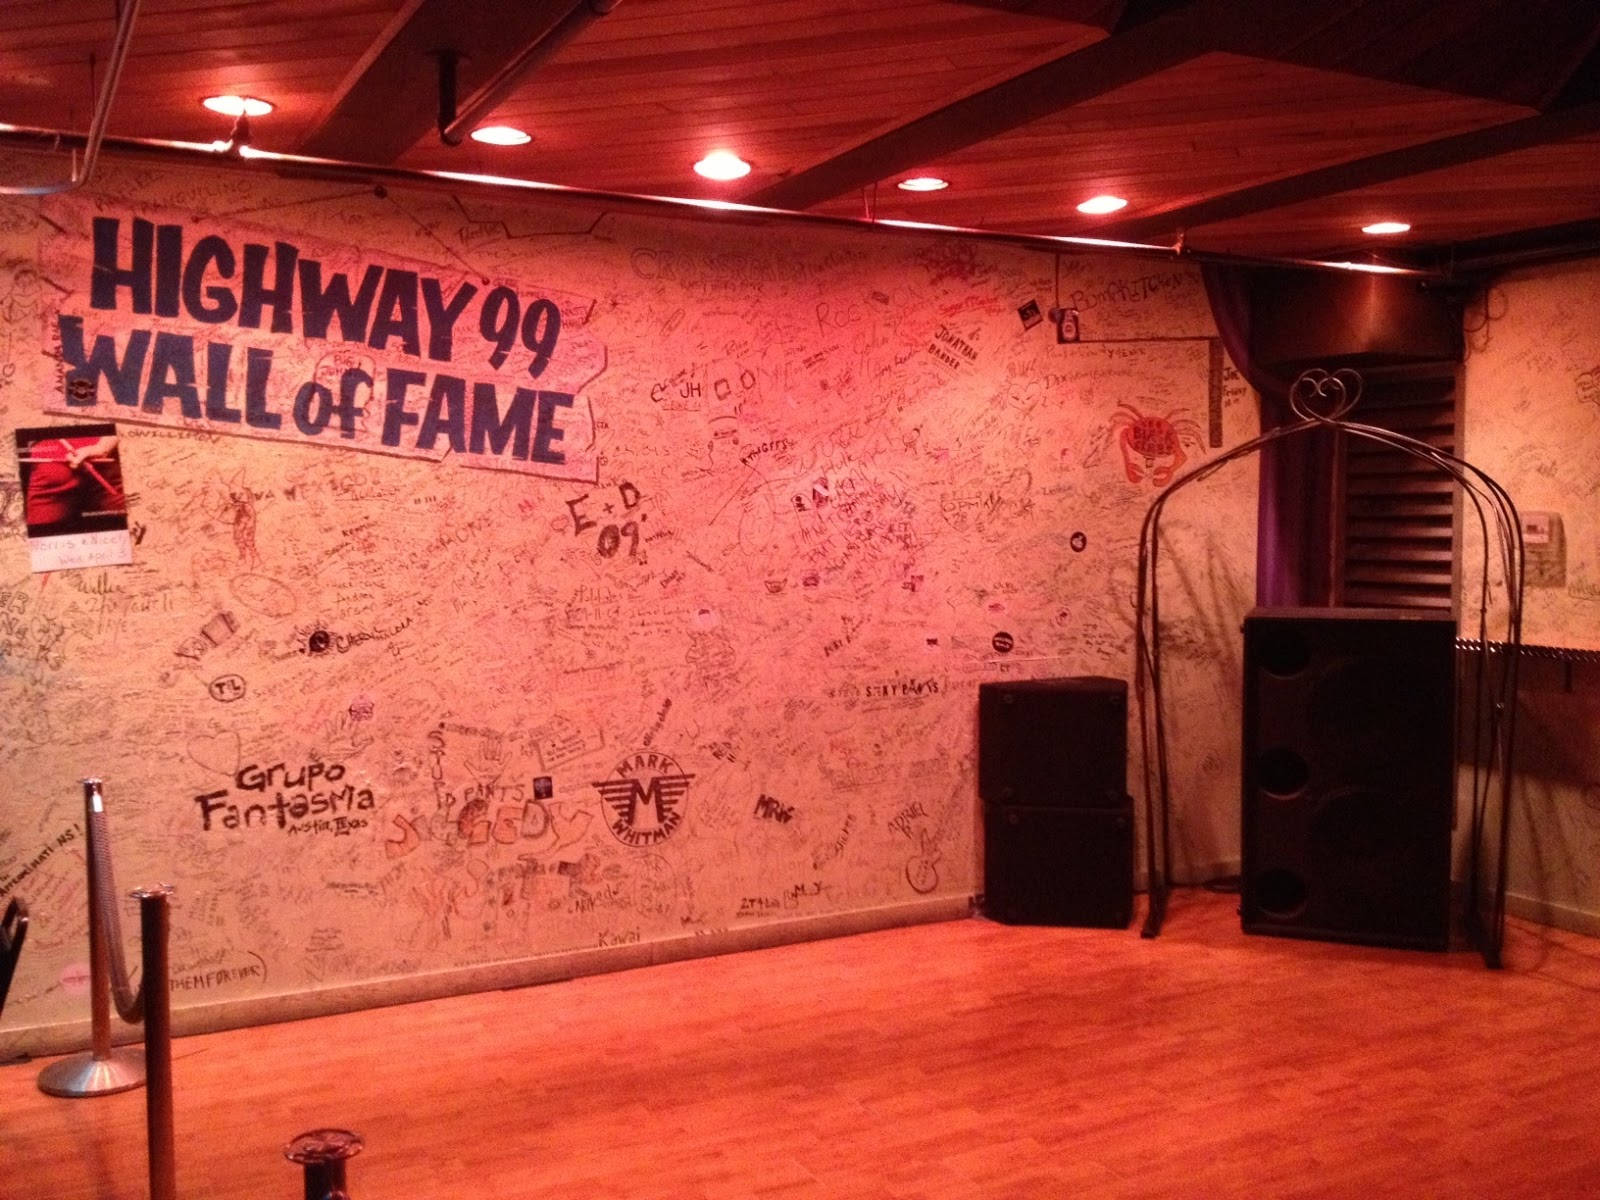 Highway 99 Blues Club Restaurant Seattle Wall Of Fame